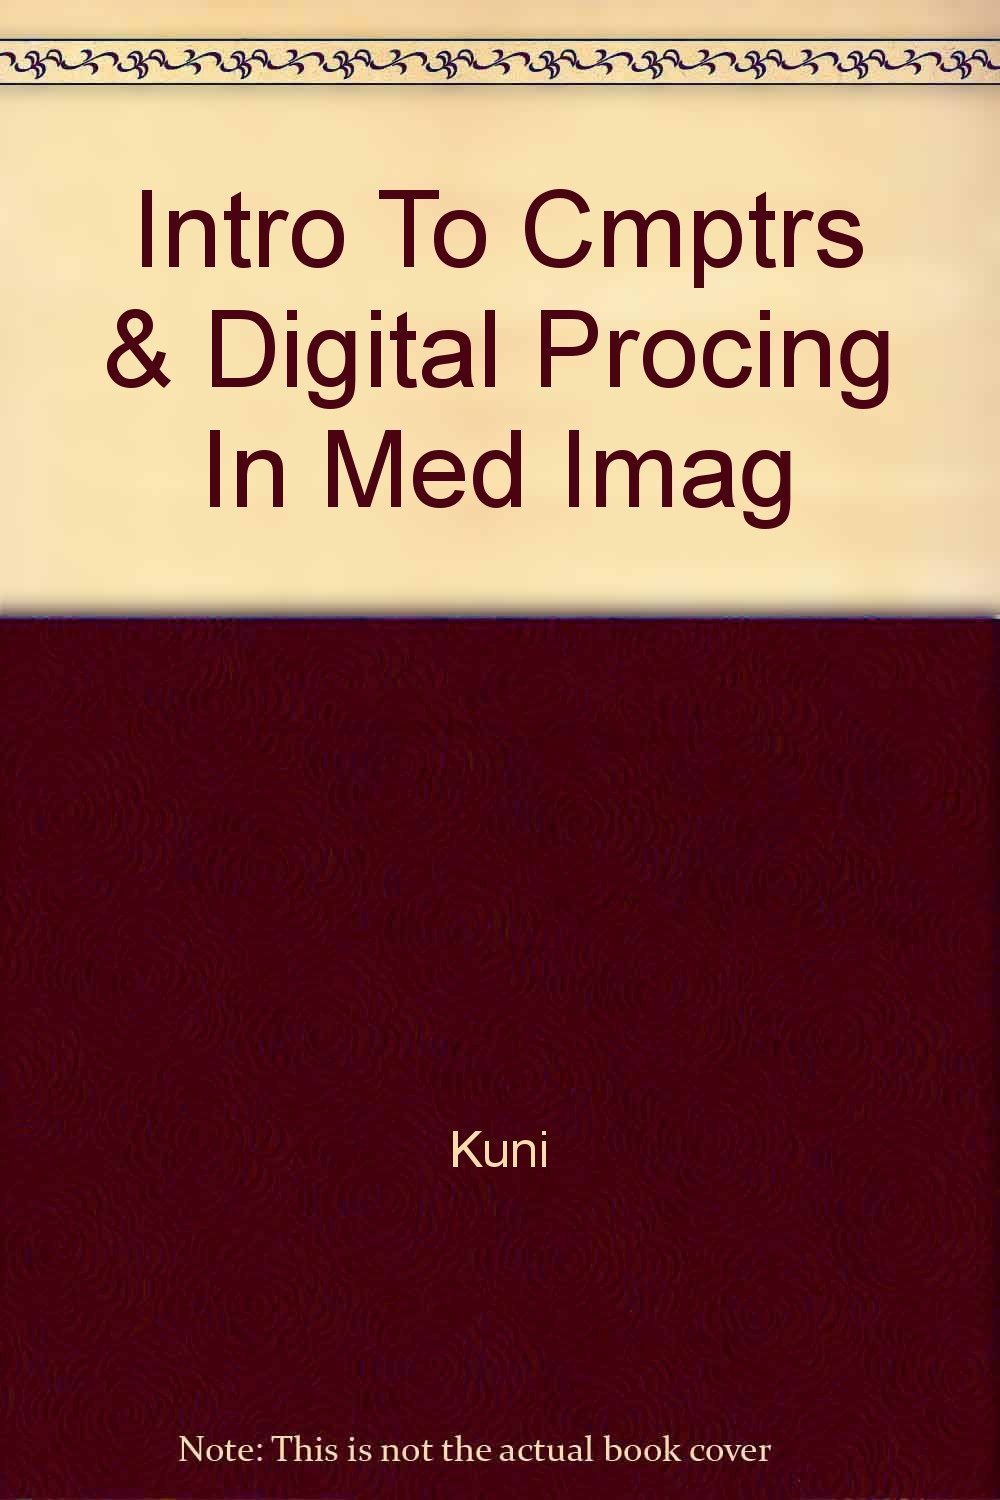 Intro To Cmptrs & Digital Procing In Med Imag